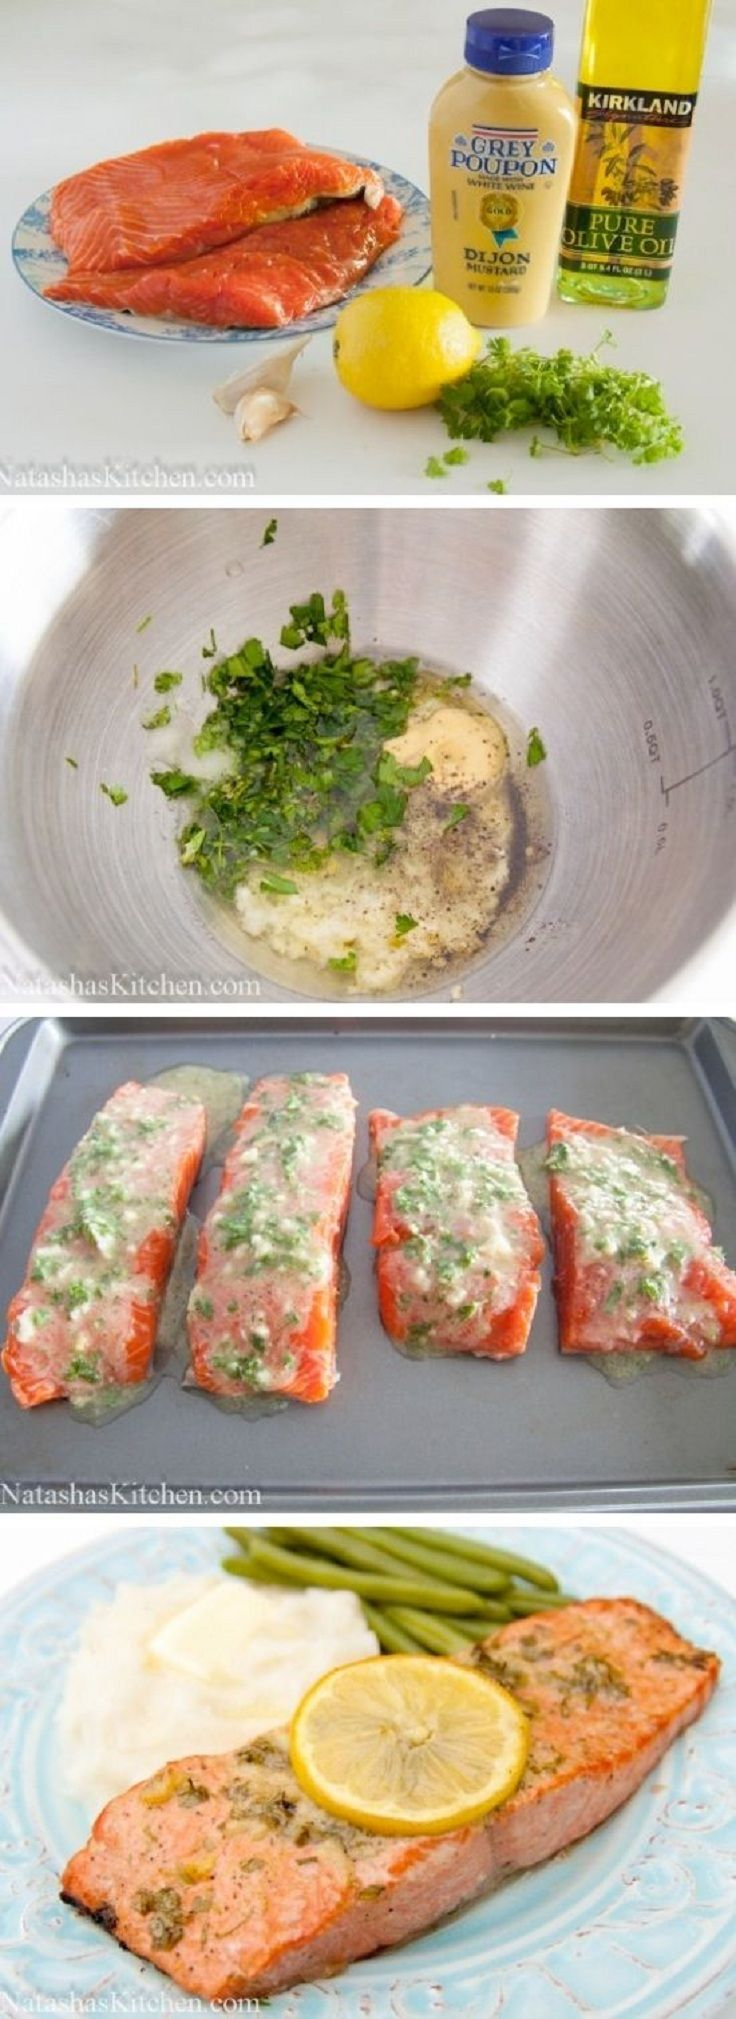 Top 10 salmon recipes dijon salmon knowing you and fish for Great fish recipes